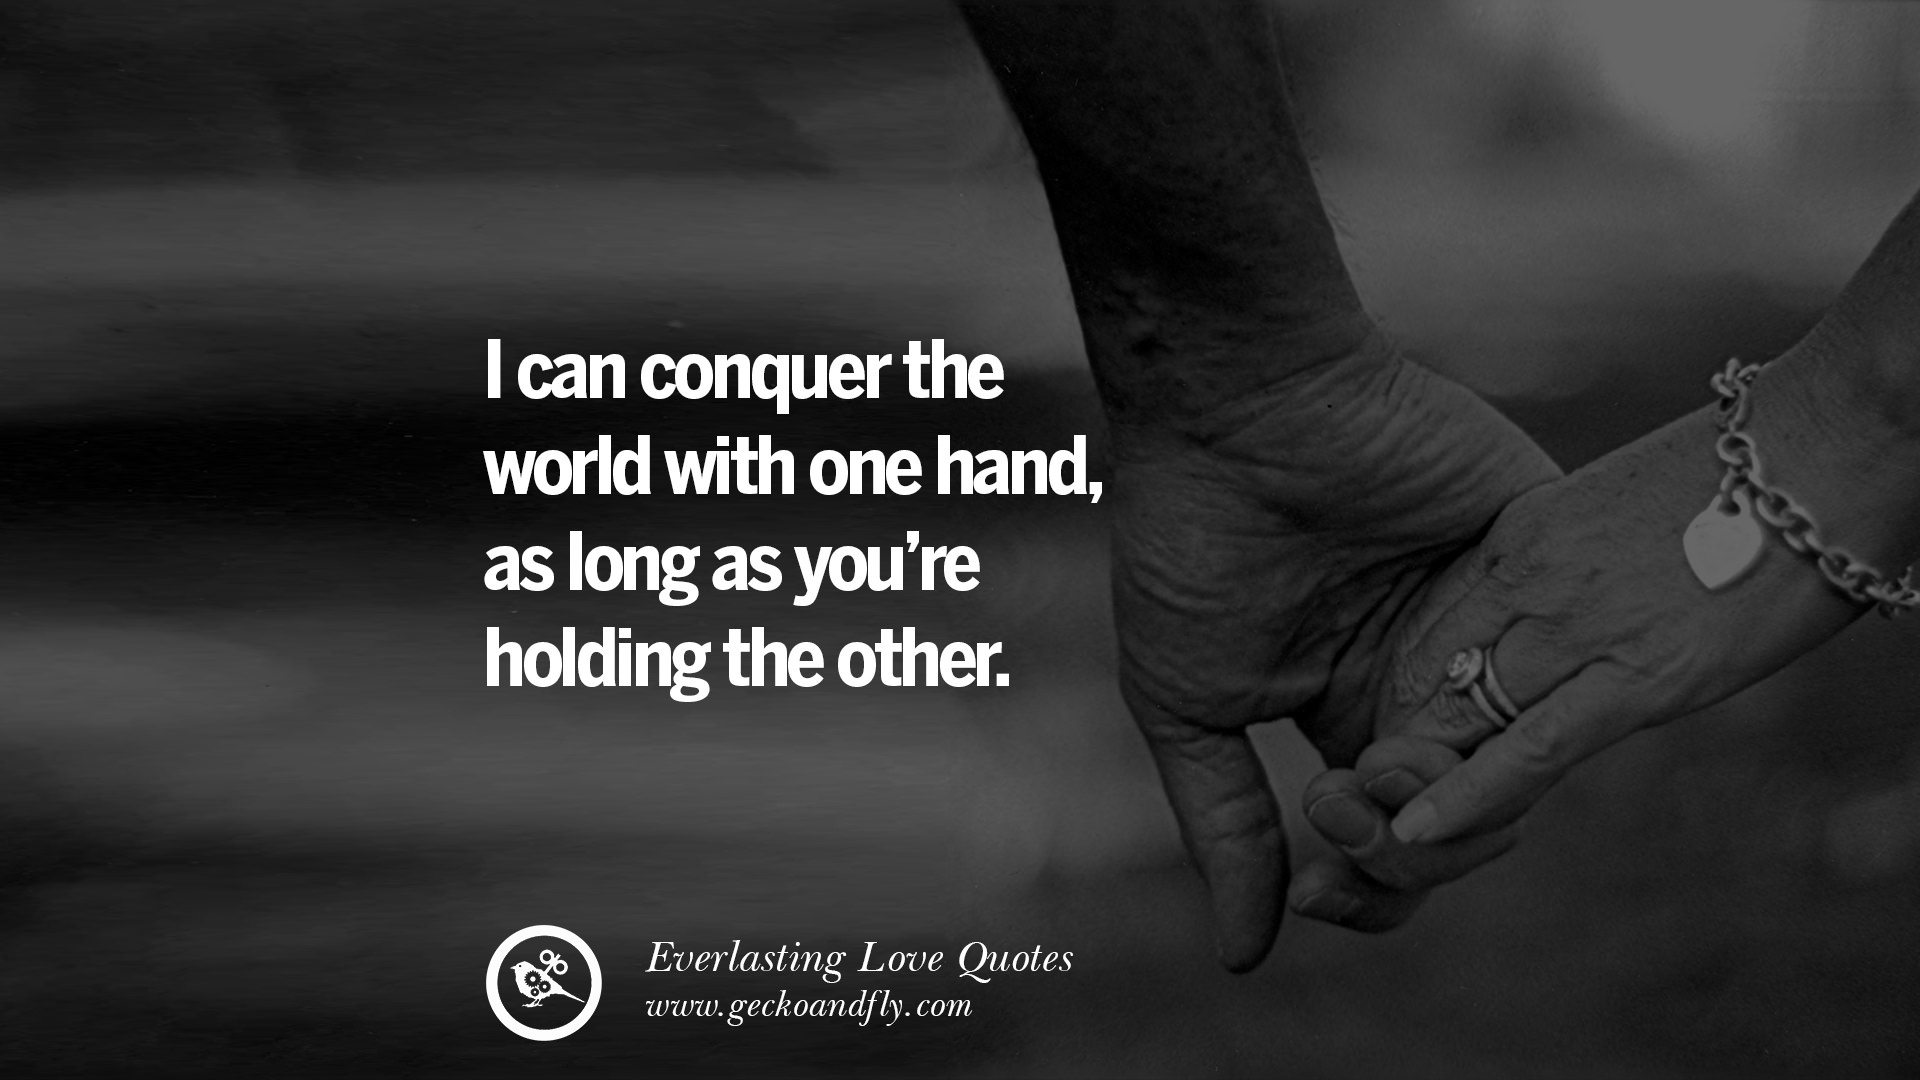 Love Quote For Her Long Distance 18 Romantic Love Quotes For Him And Her On Valentine Day